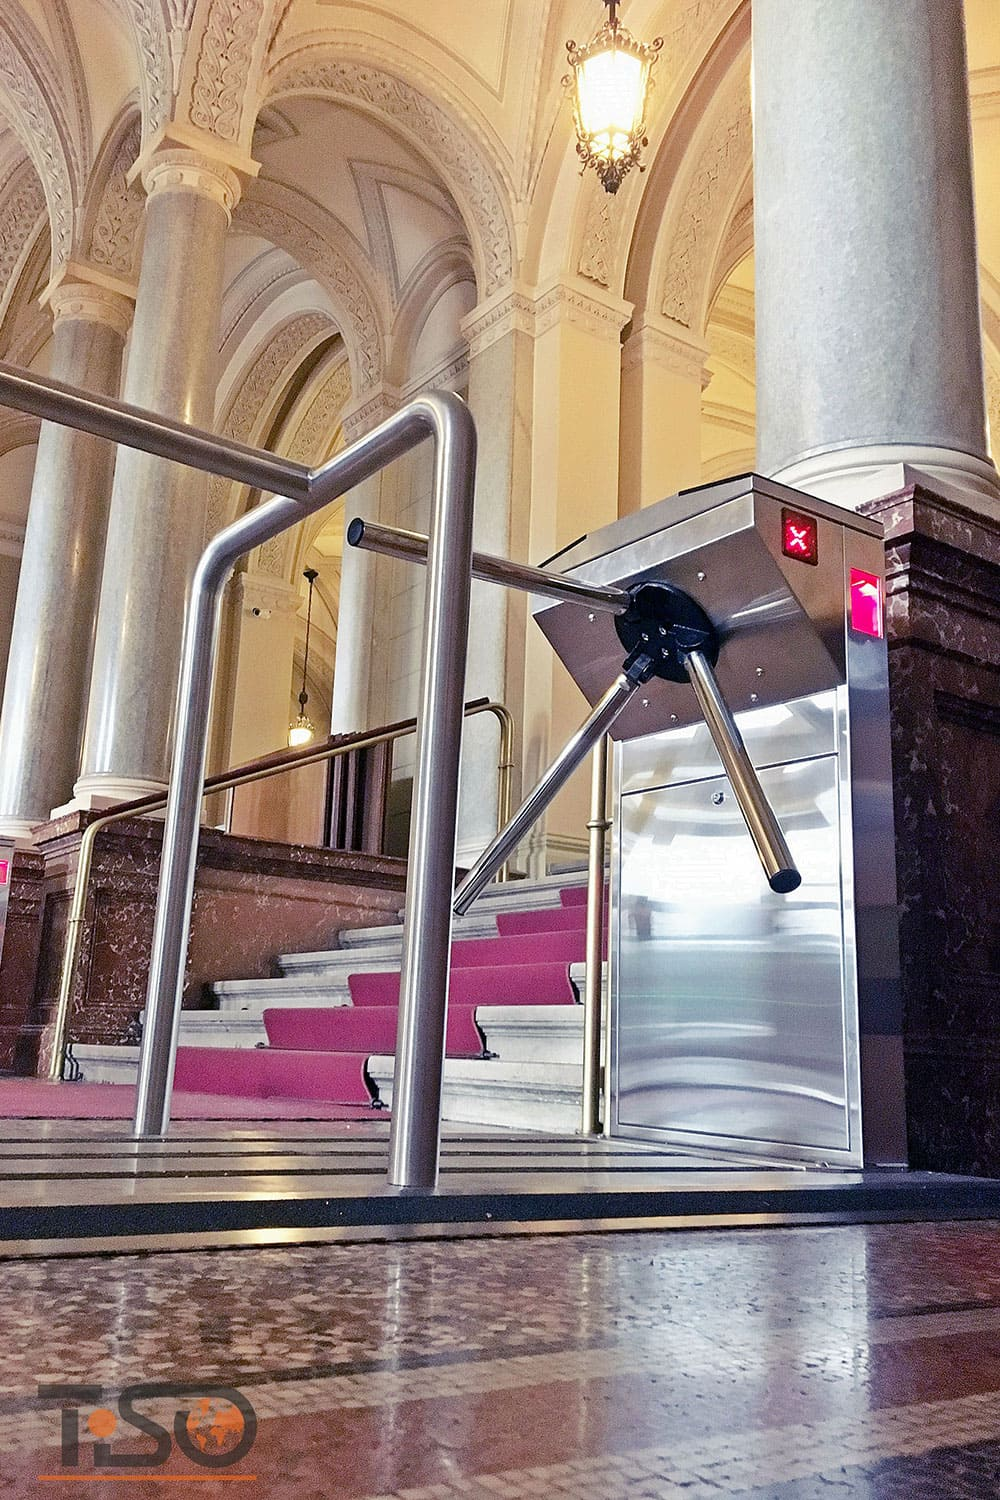 Bastion and mobile platform Frame-M, The Hungarian academy of sciences, Budapest, Hungary